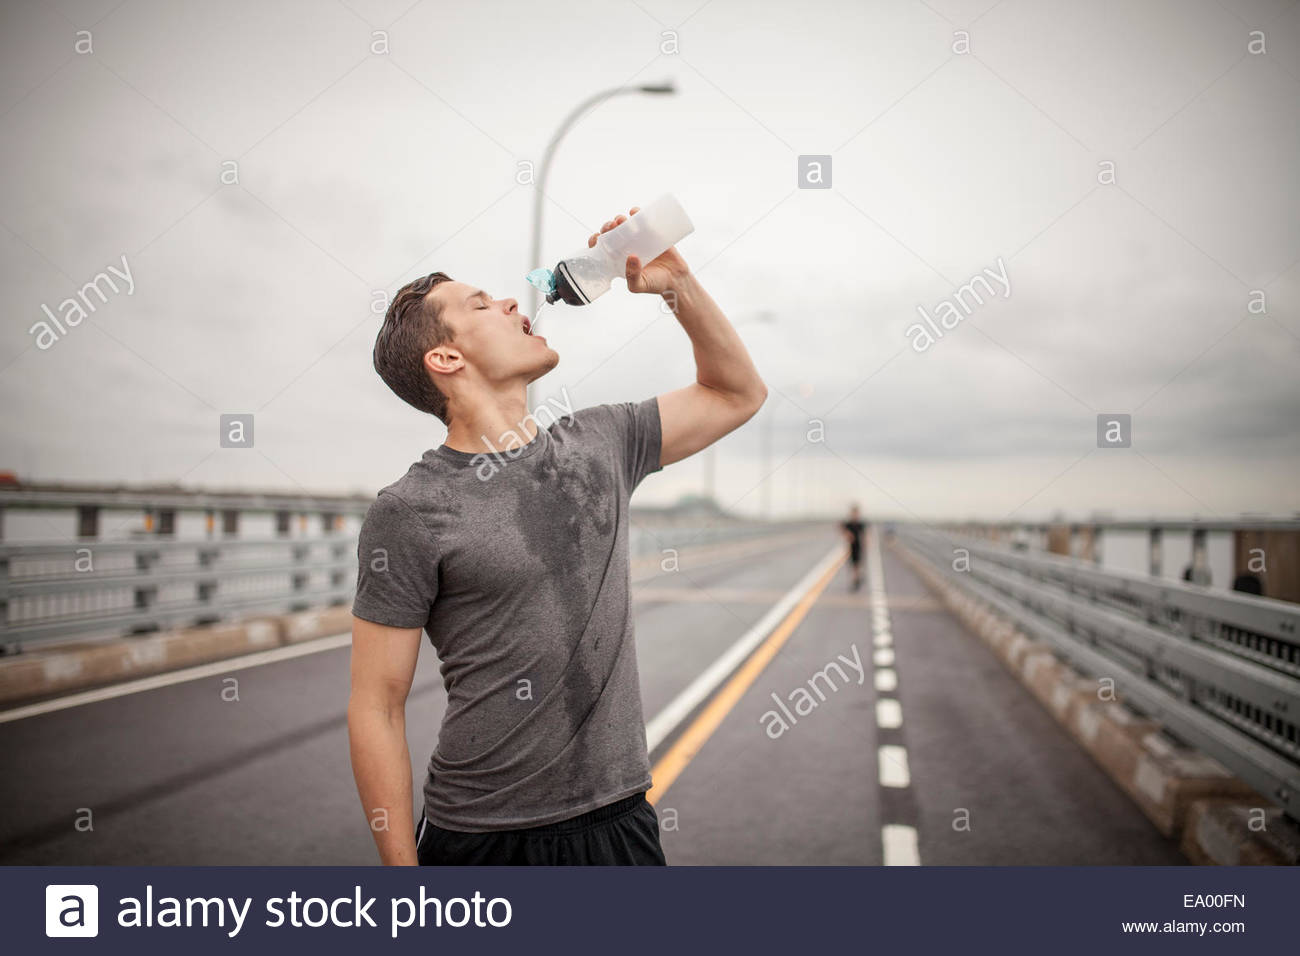 Young man drinking water from bottle - Stock Image